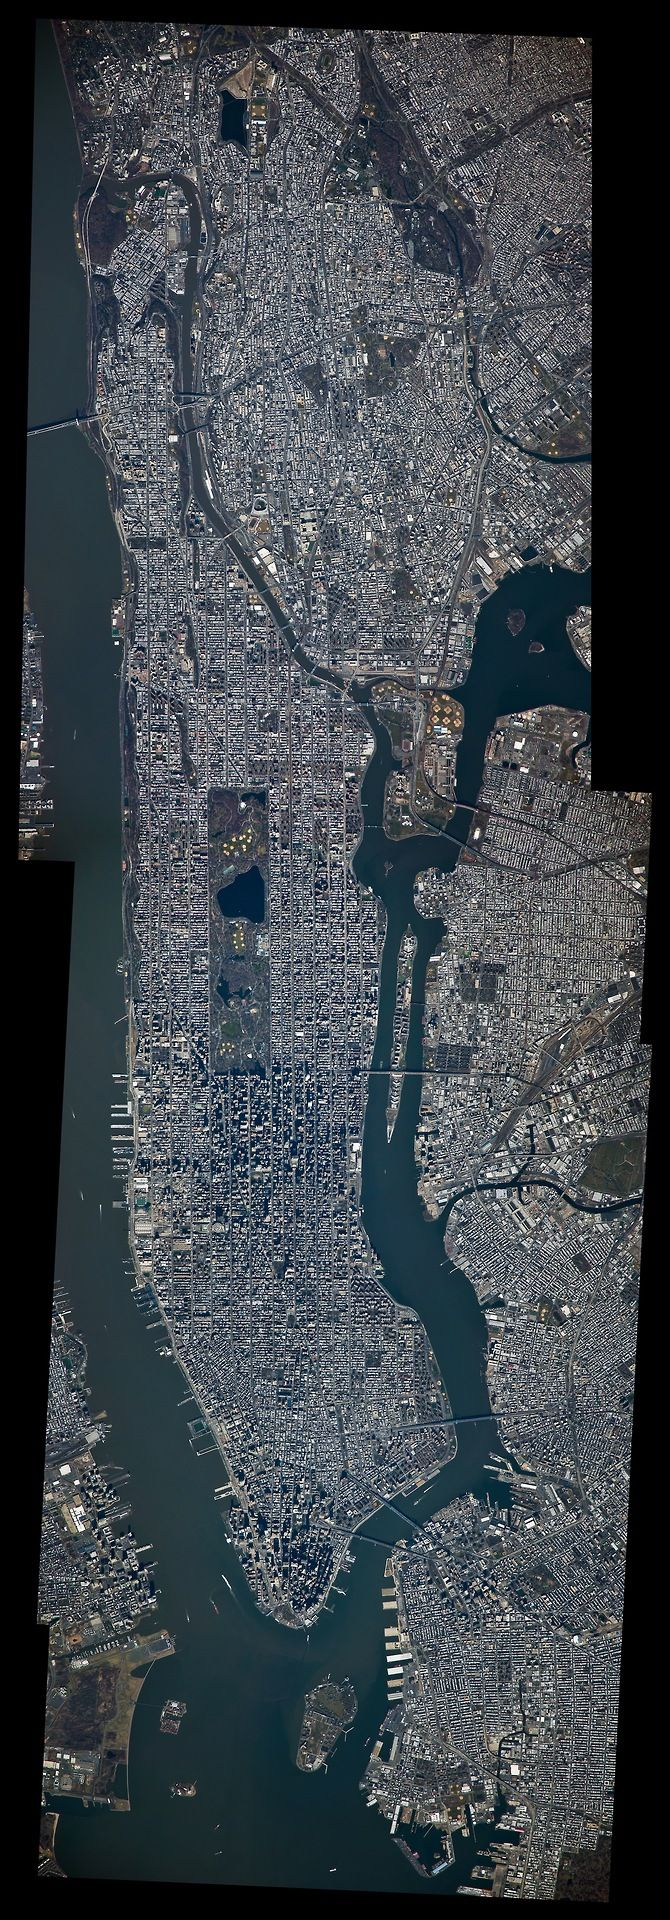 Manhattan from the International Space Station 533